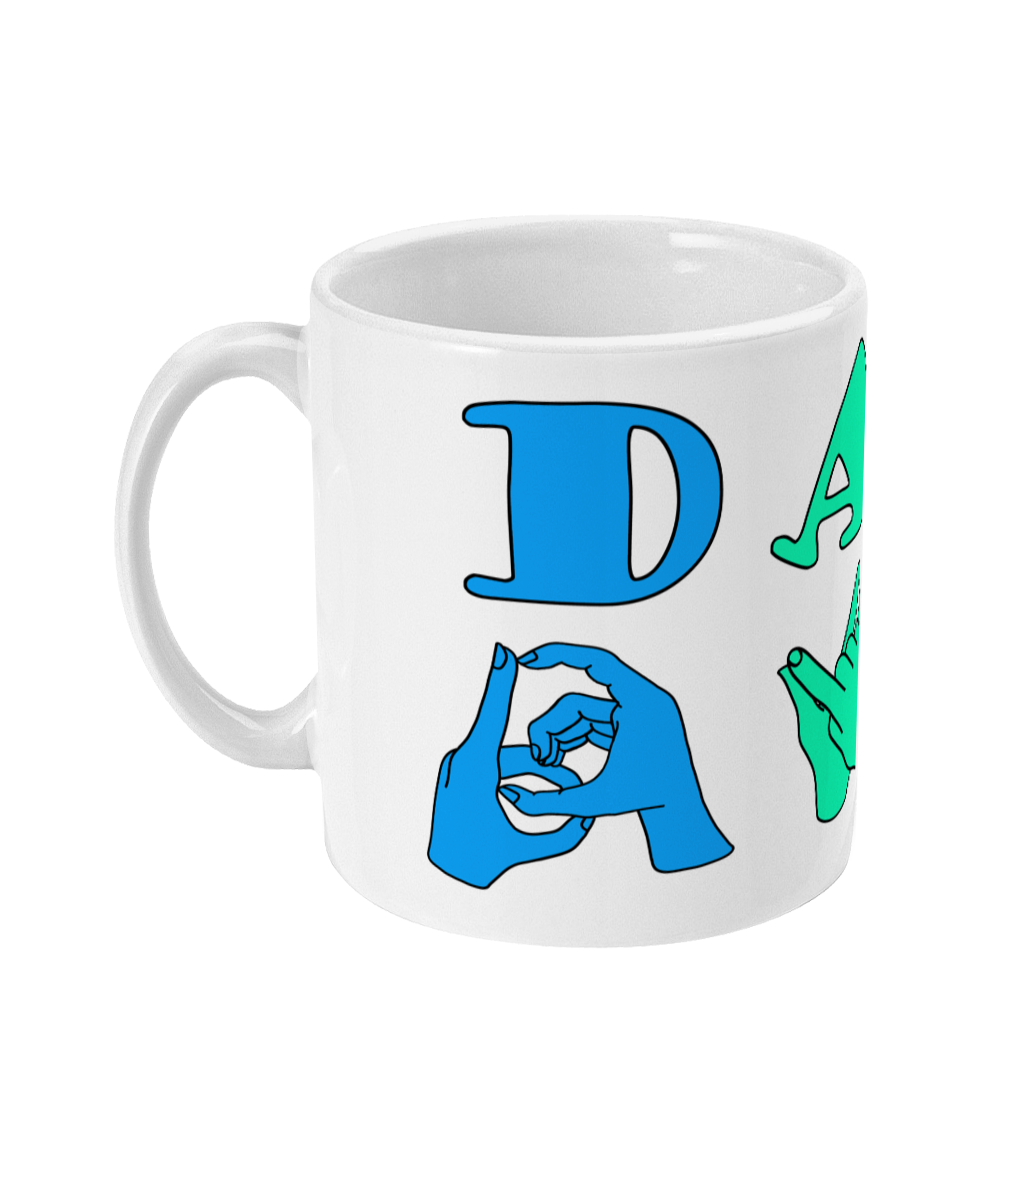 Dad Mug 11oz - CLDCS